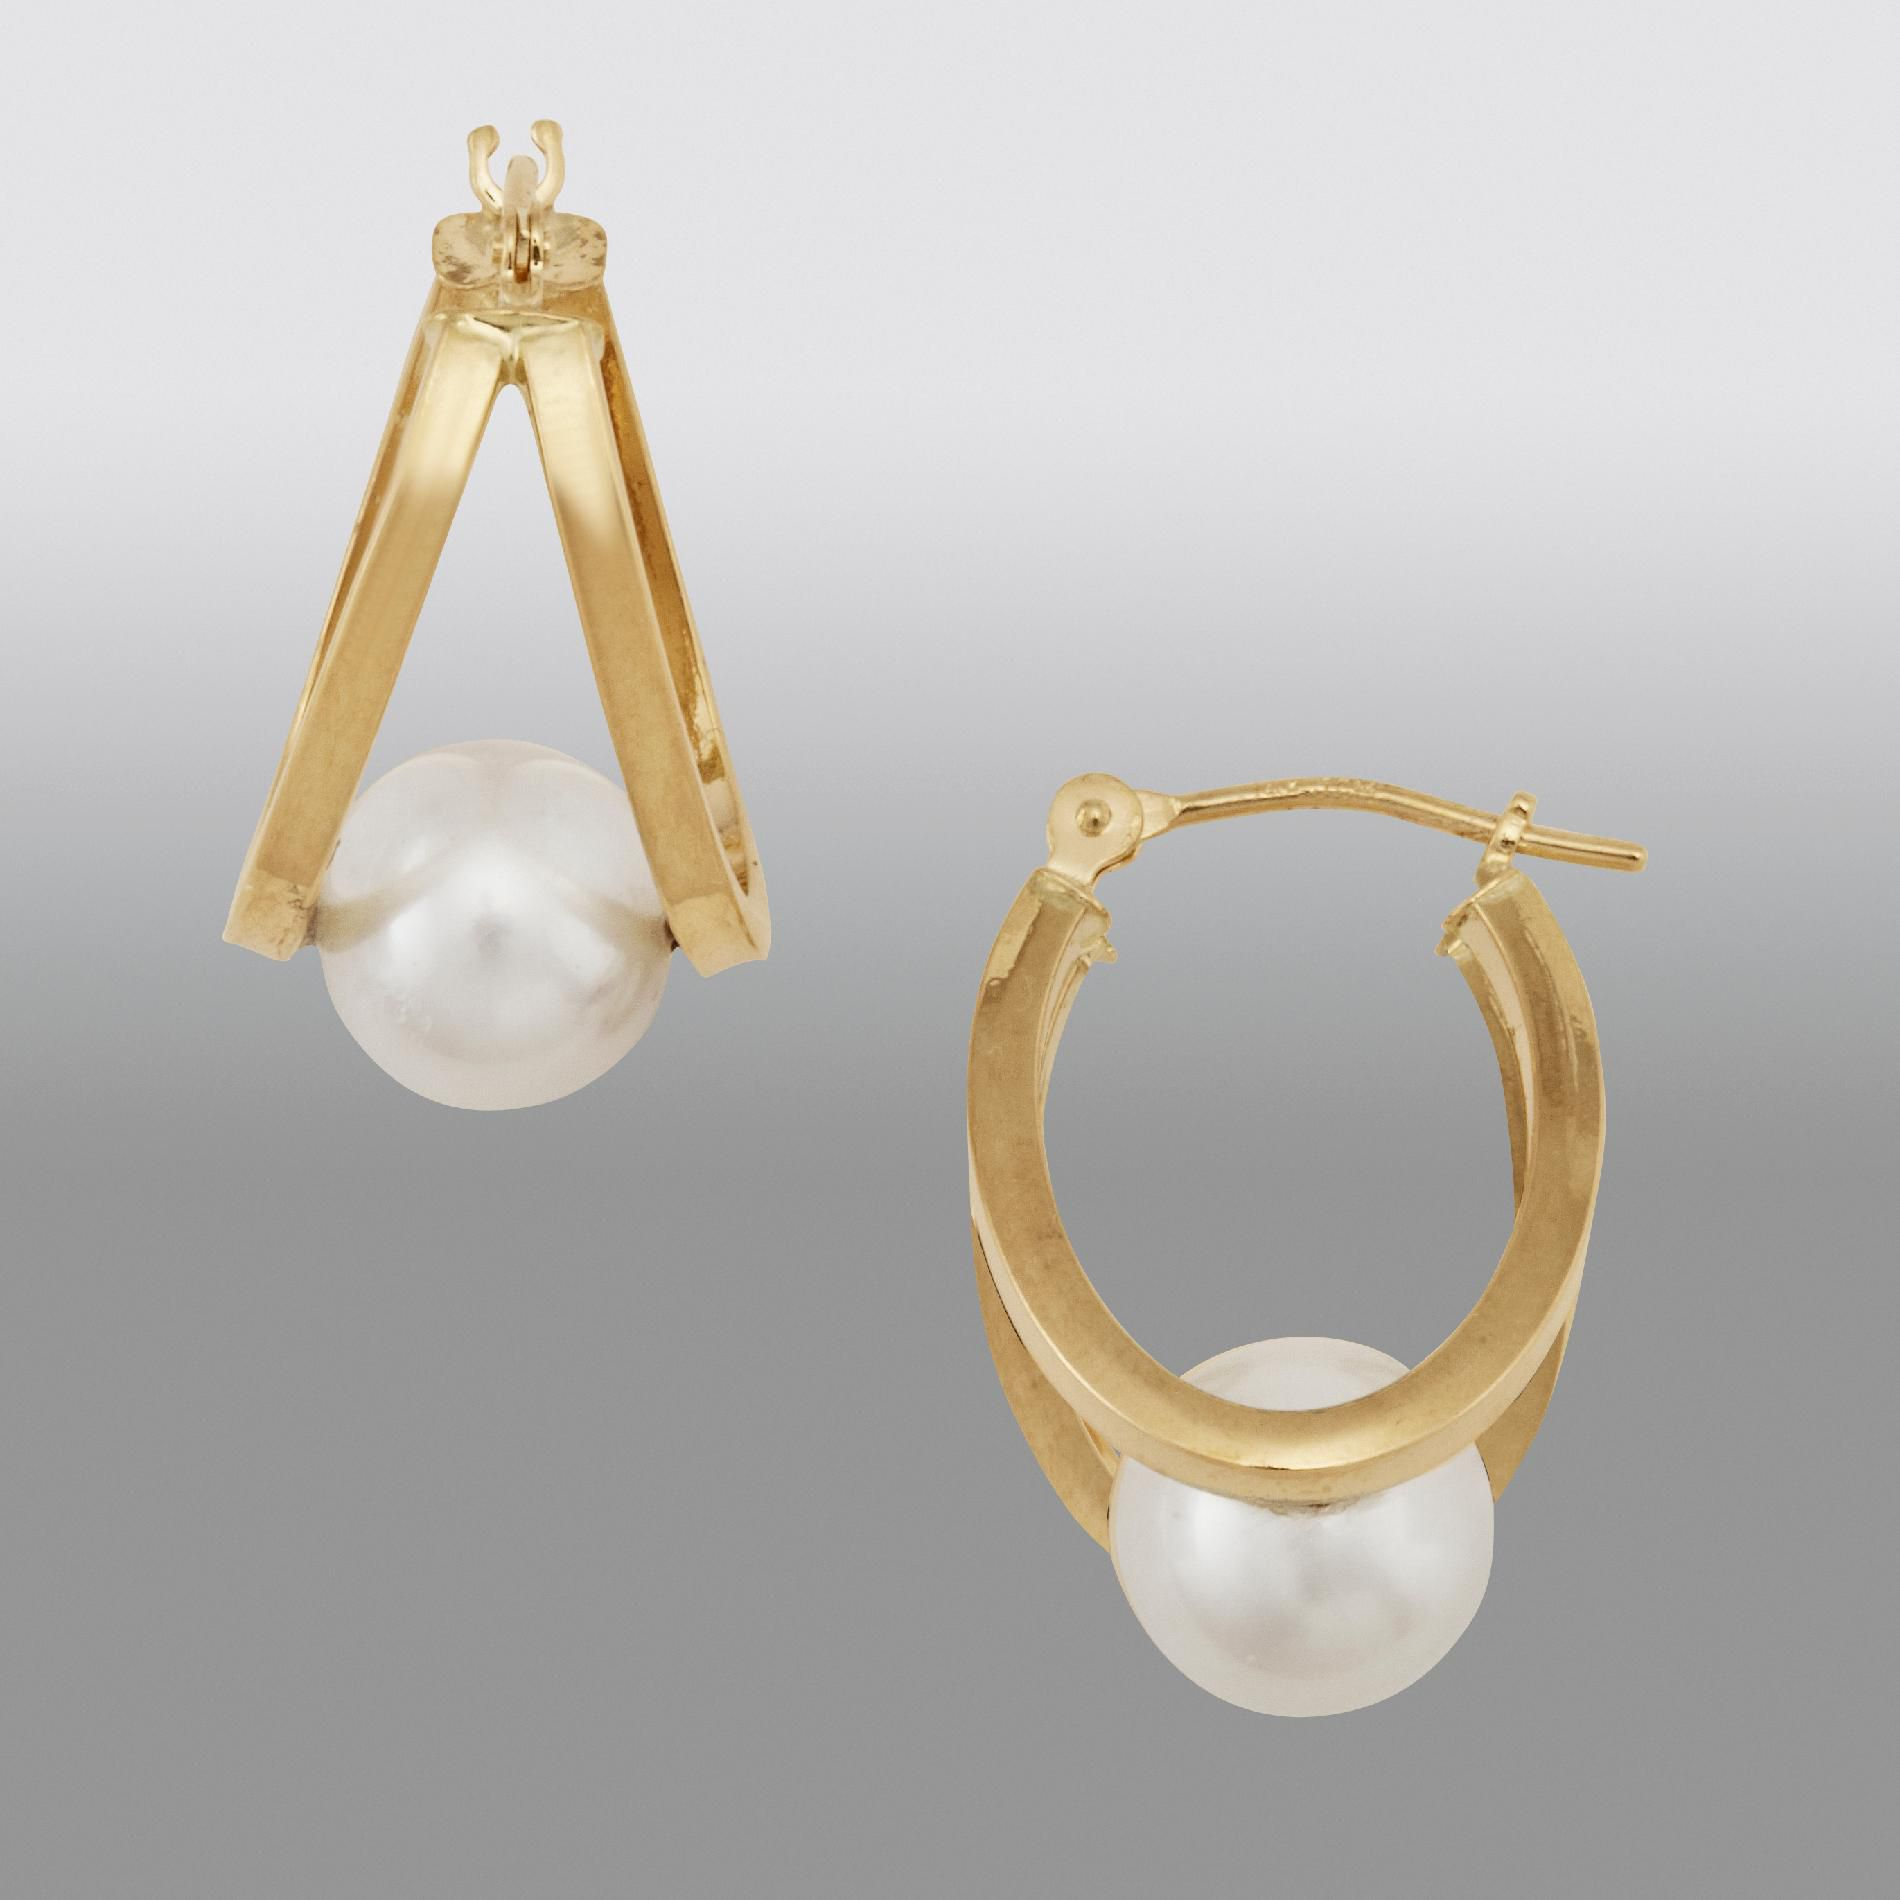 Fresh Water Cultured Pearl Earrings                                                                                              at mygofer.com